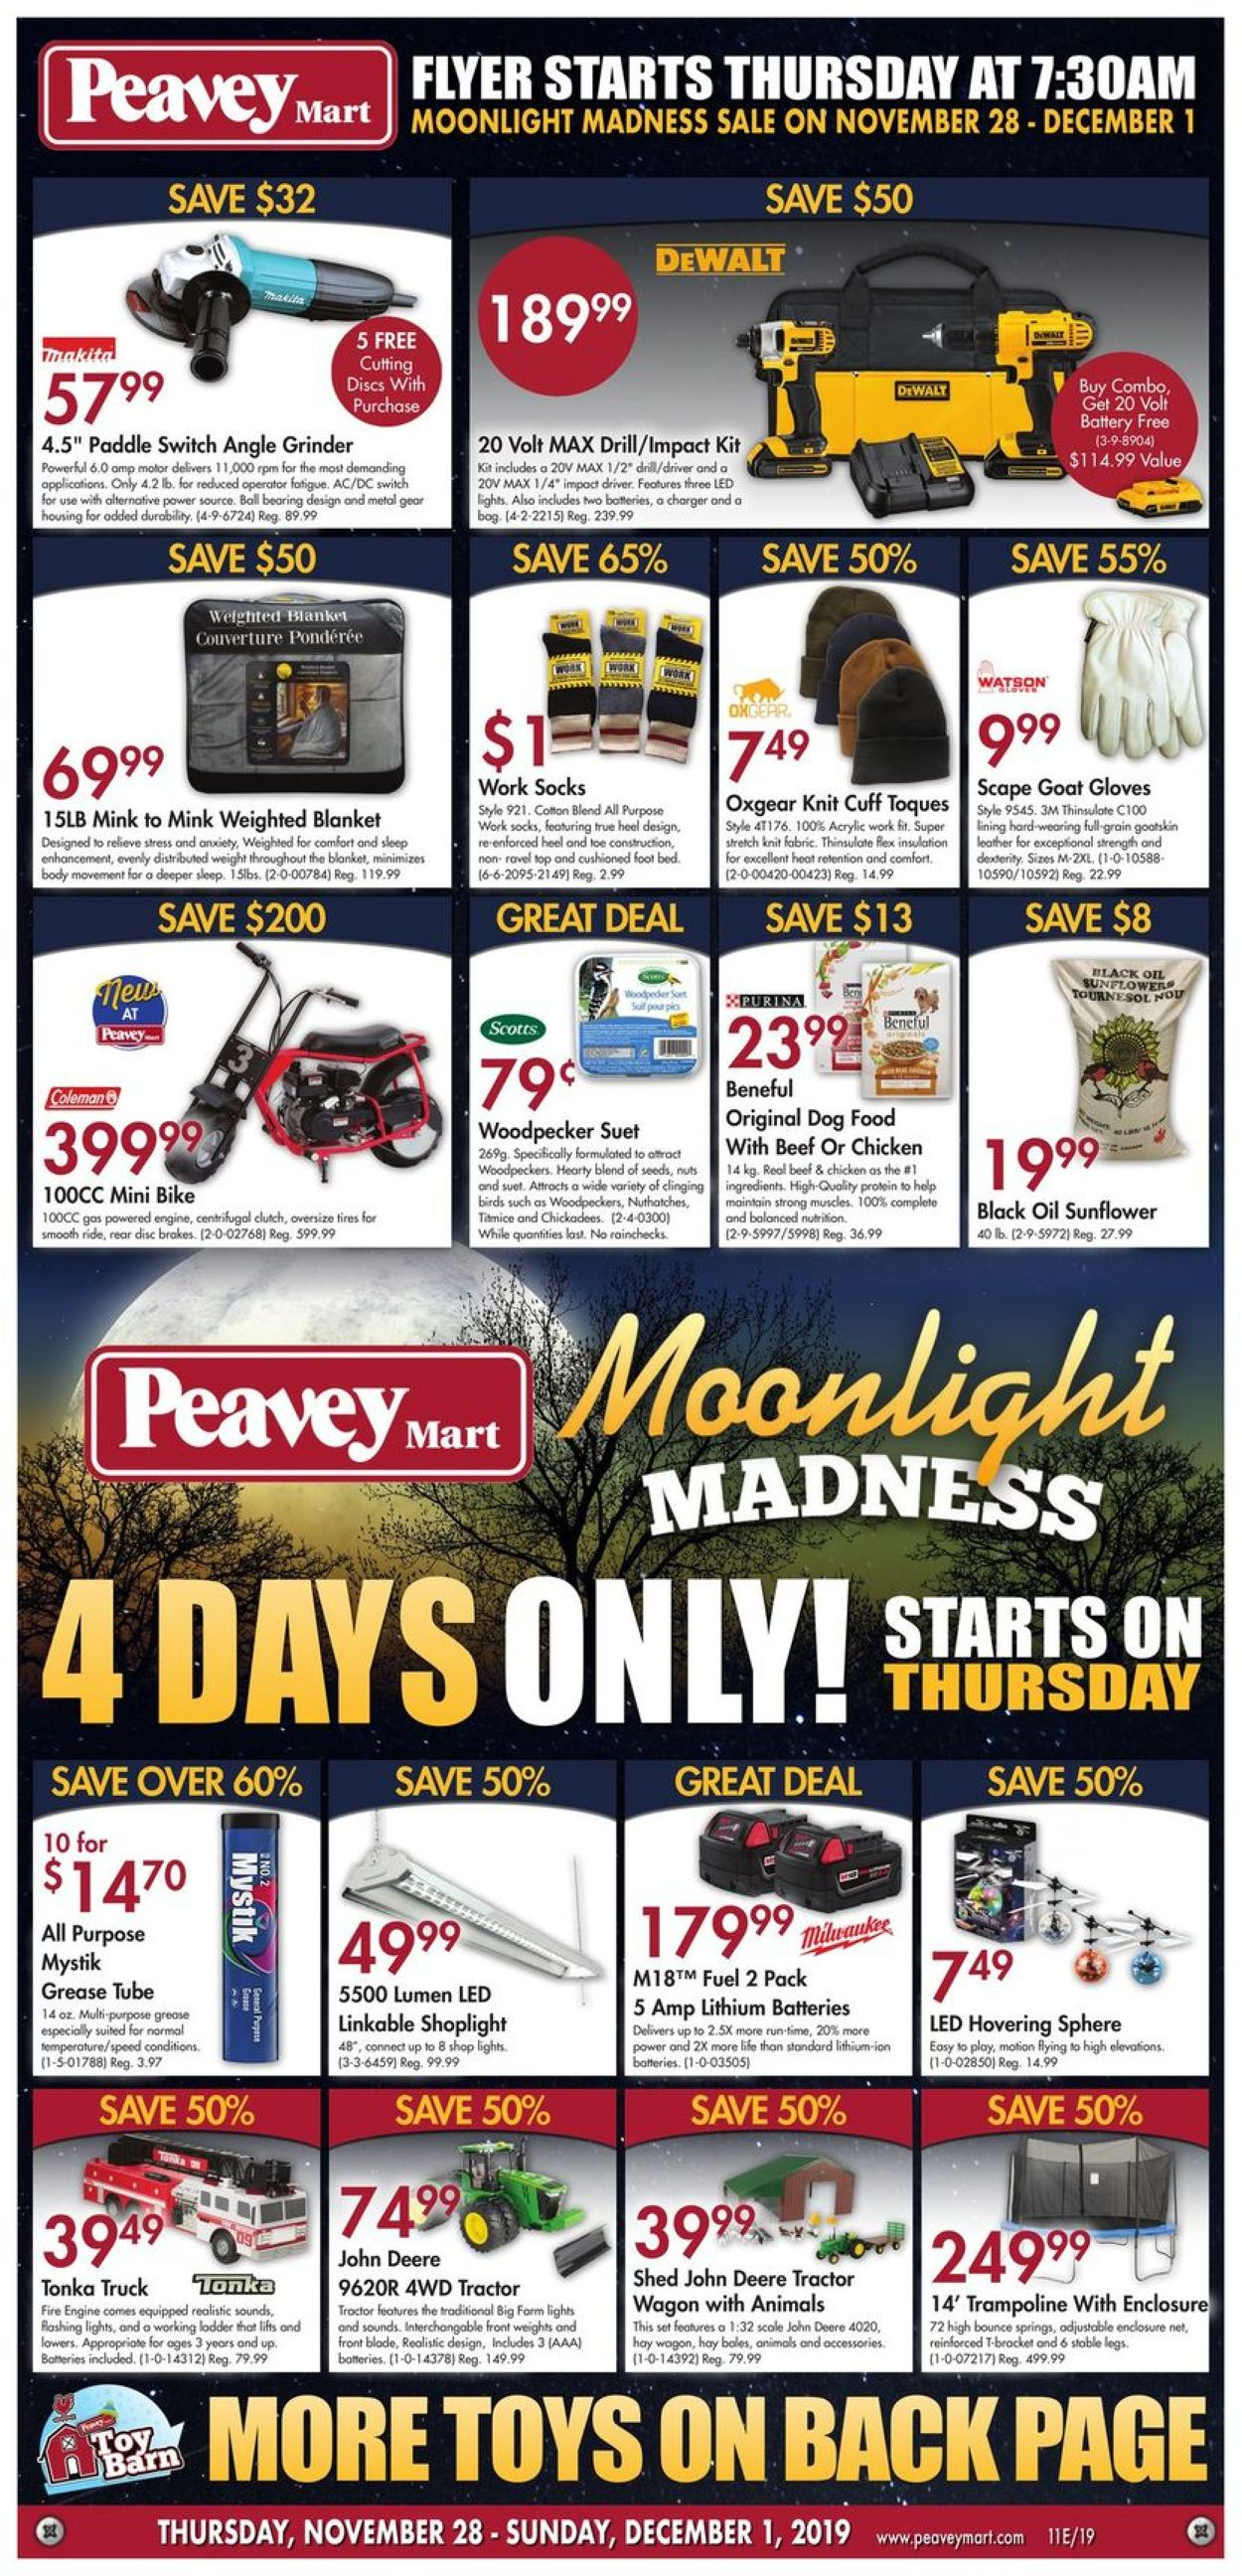 Peavey Mart - MOONLIGHT MADNESS Flyer - 11/28-12/01/2019